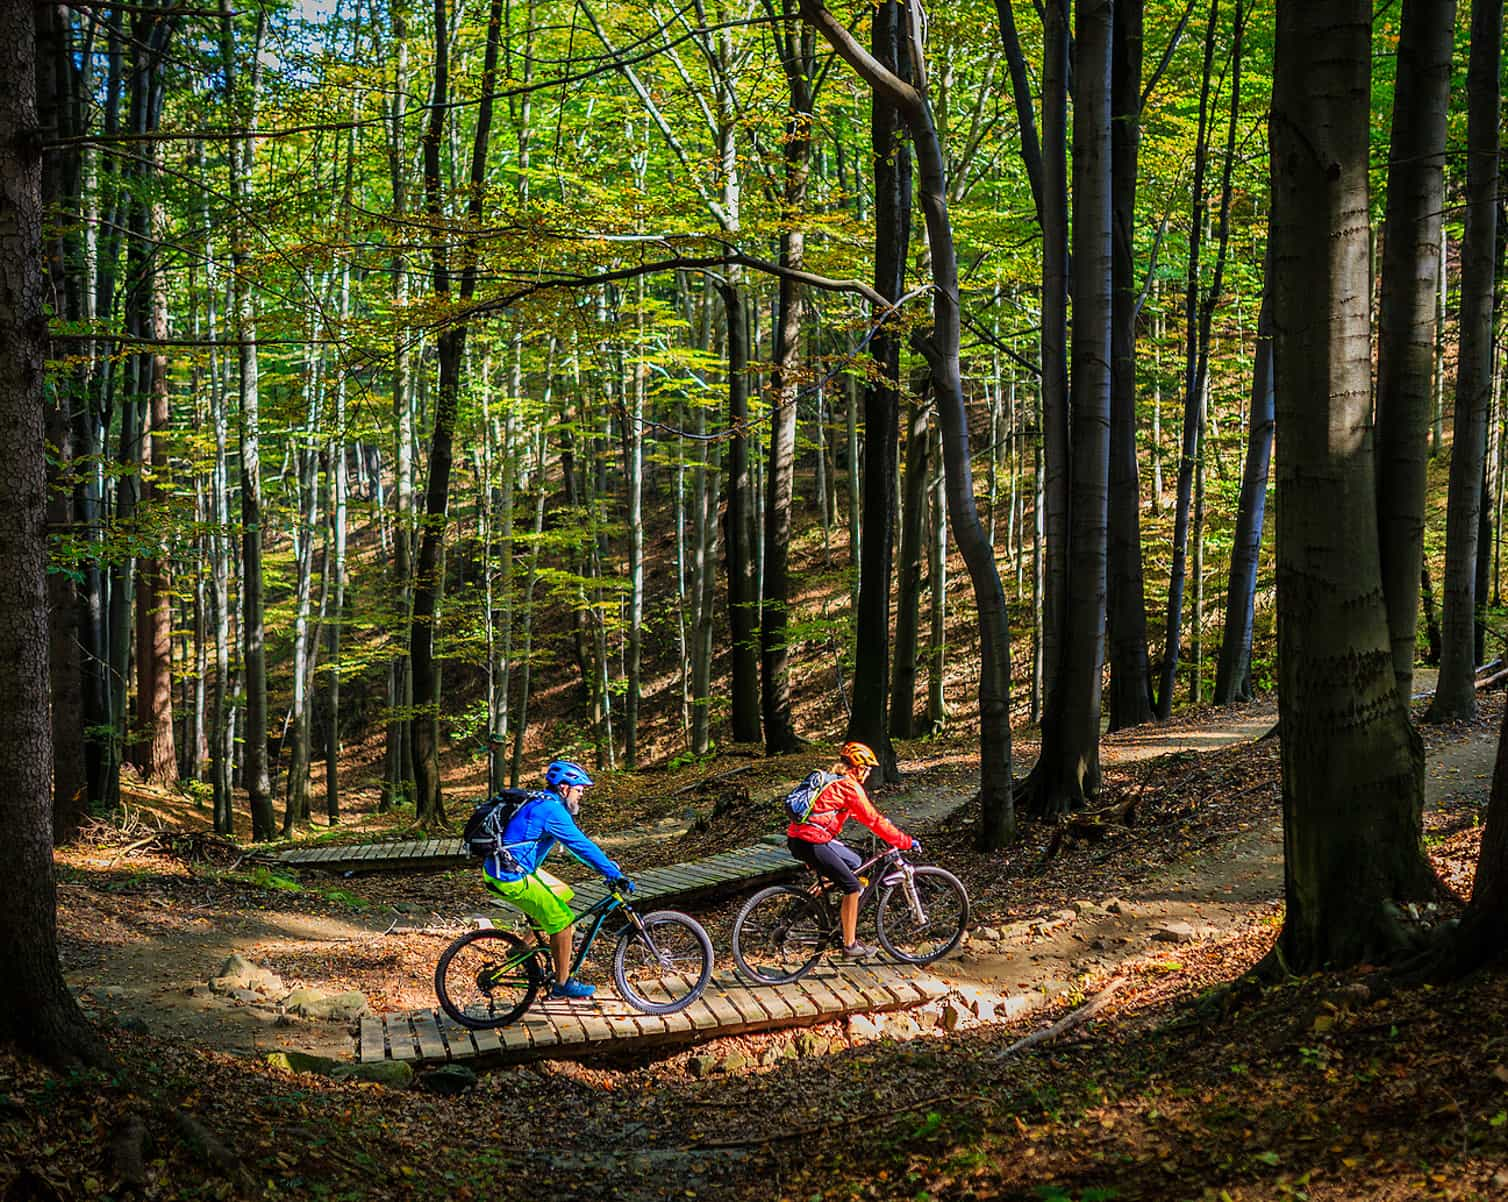 A couple rides mountain bikes on a trail in the woods